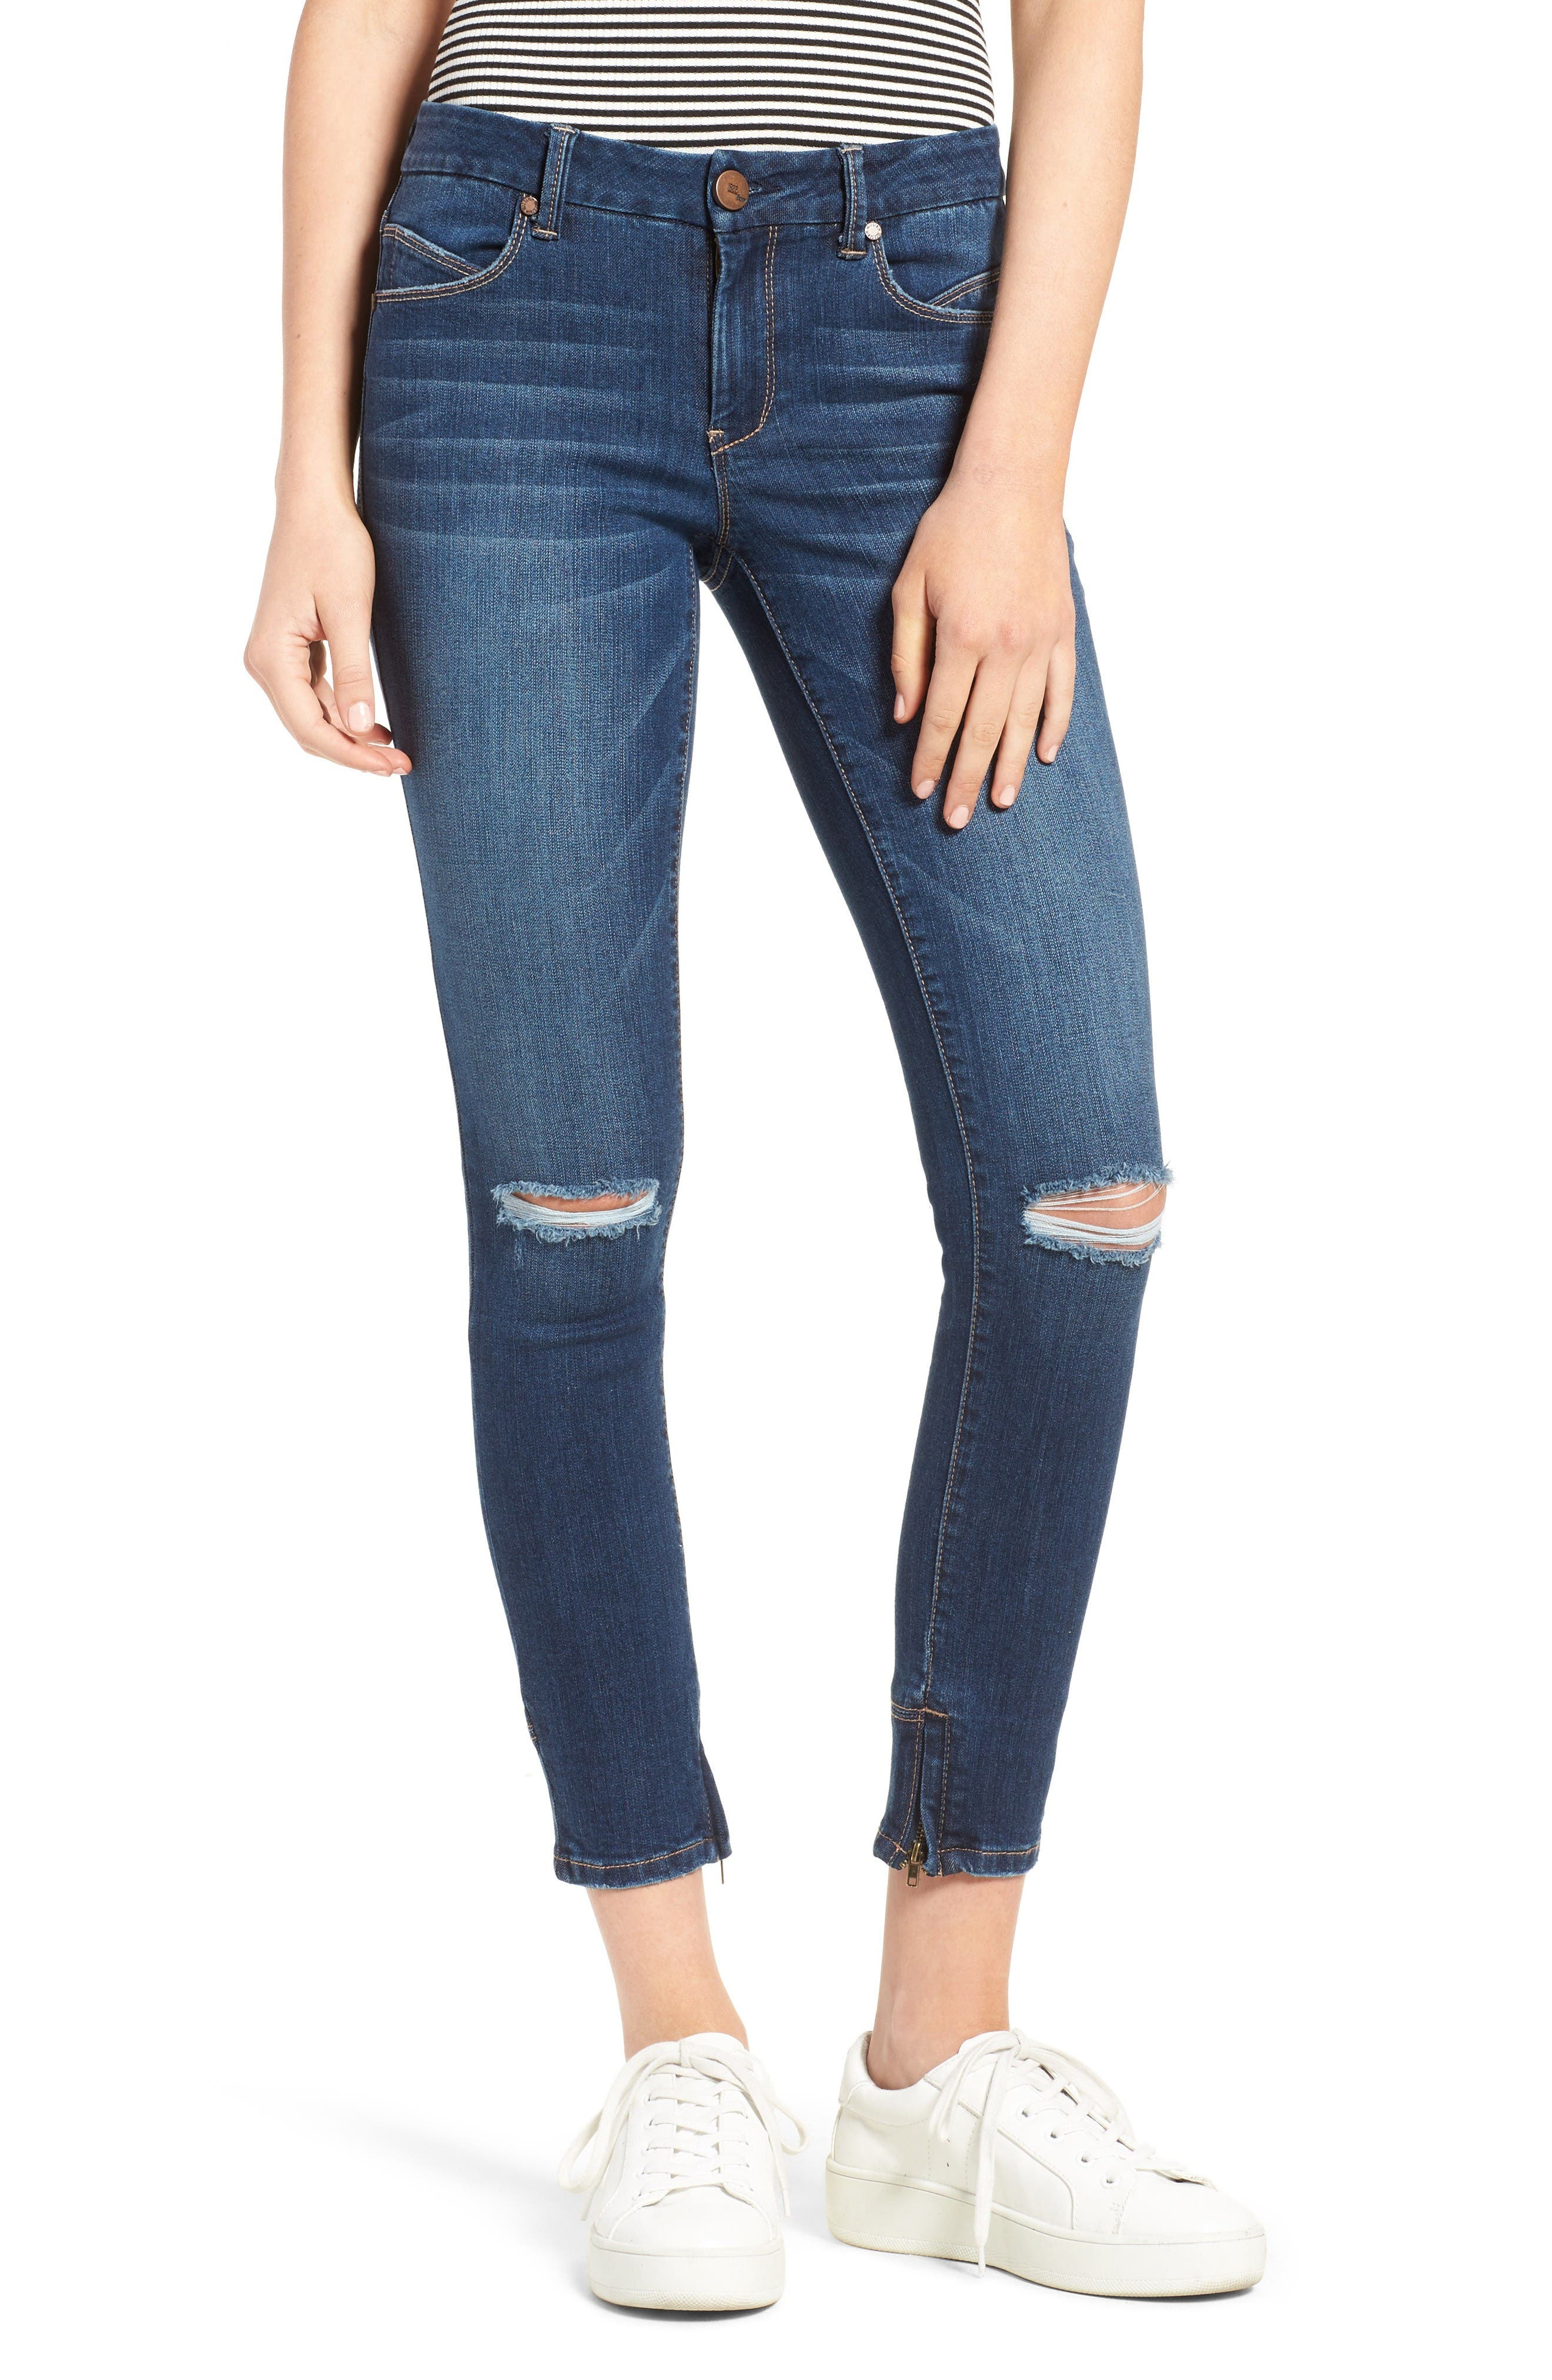 Main Image - 1822 Denim Ankle Skinny Jeans (Athens)